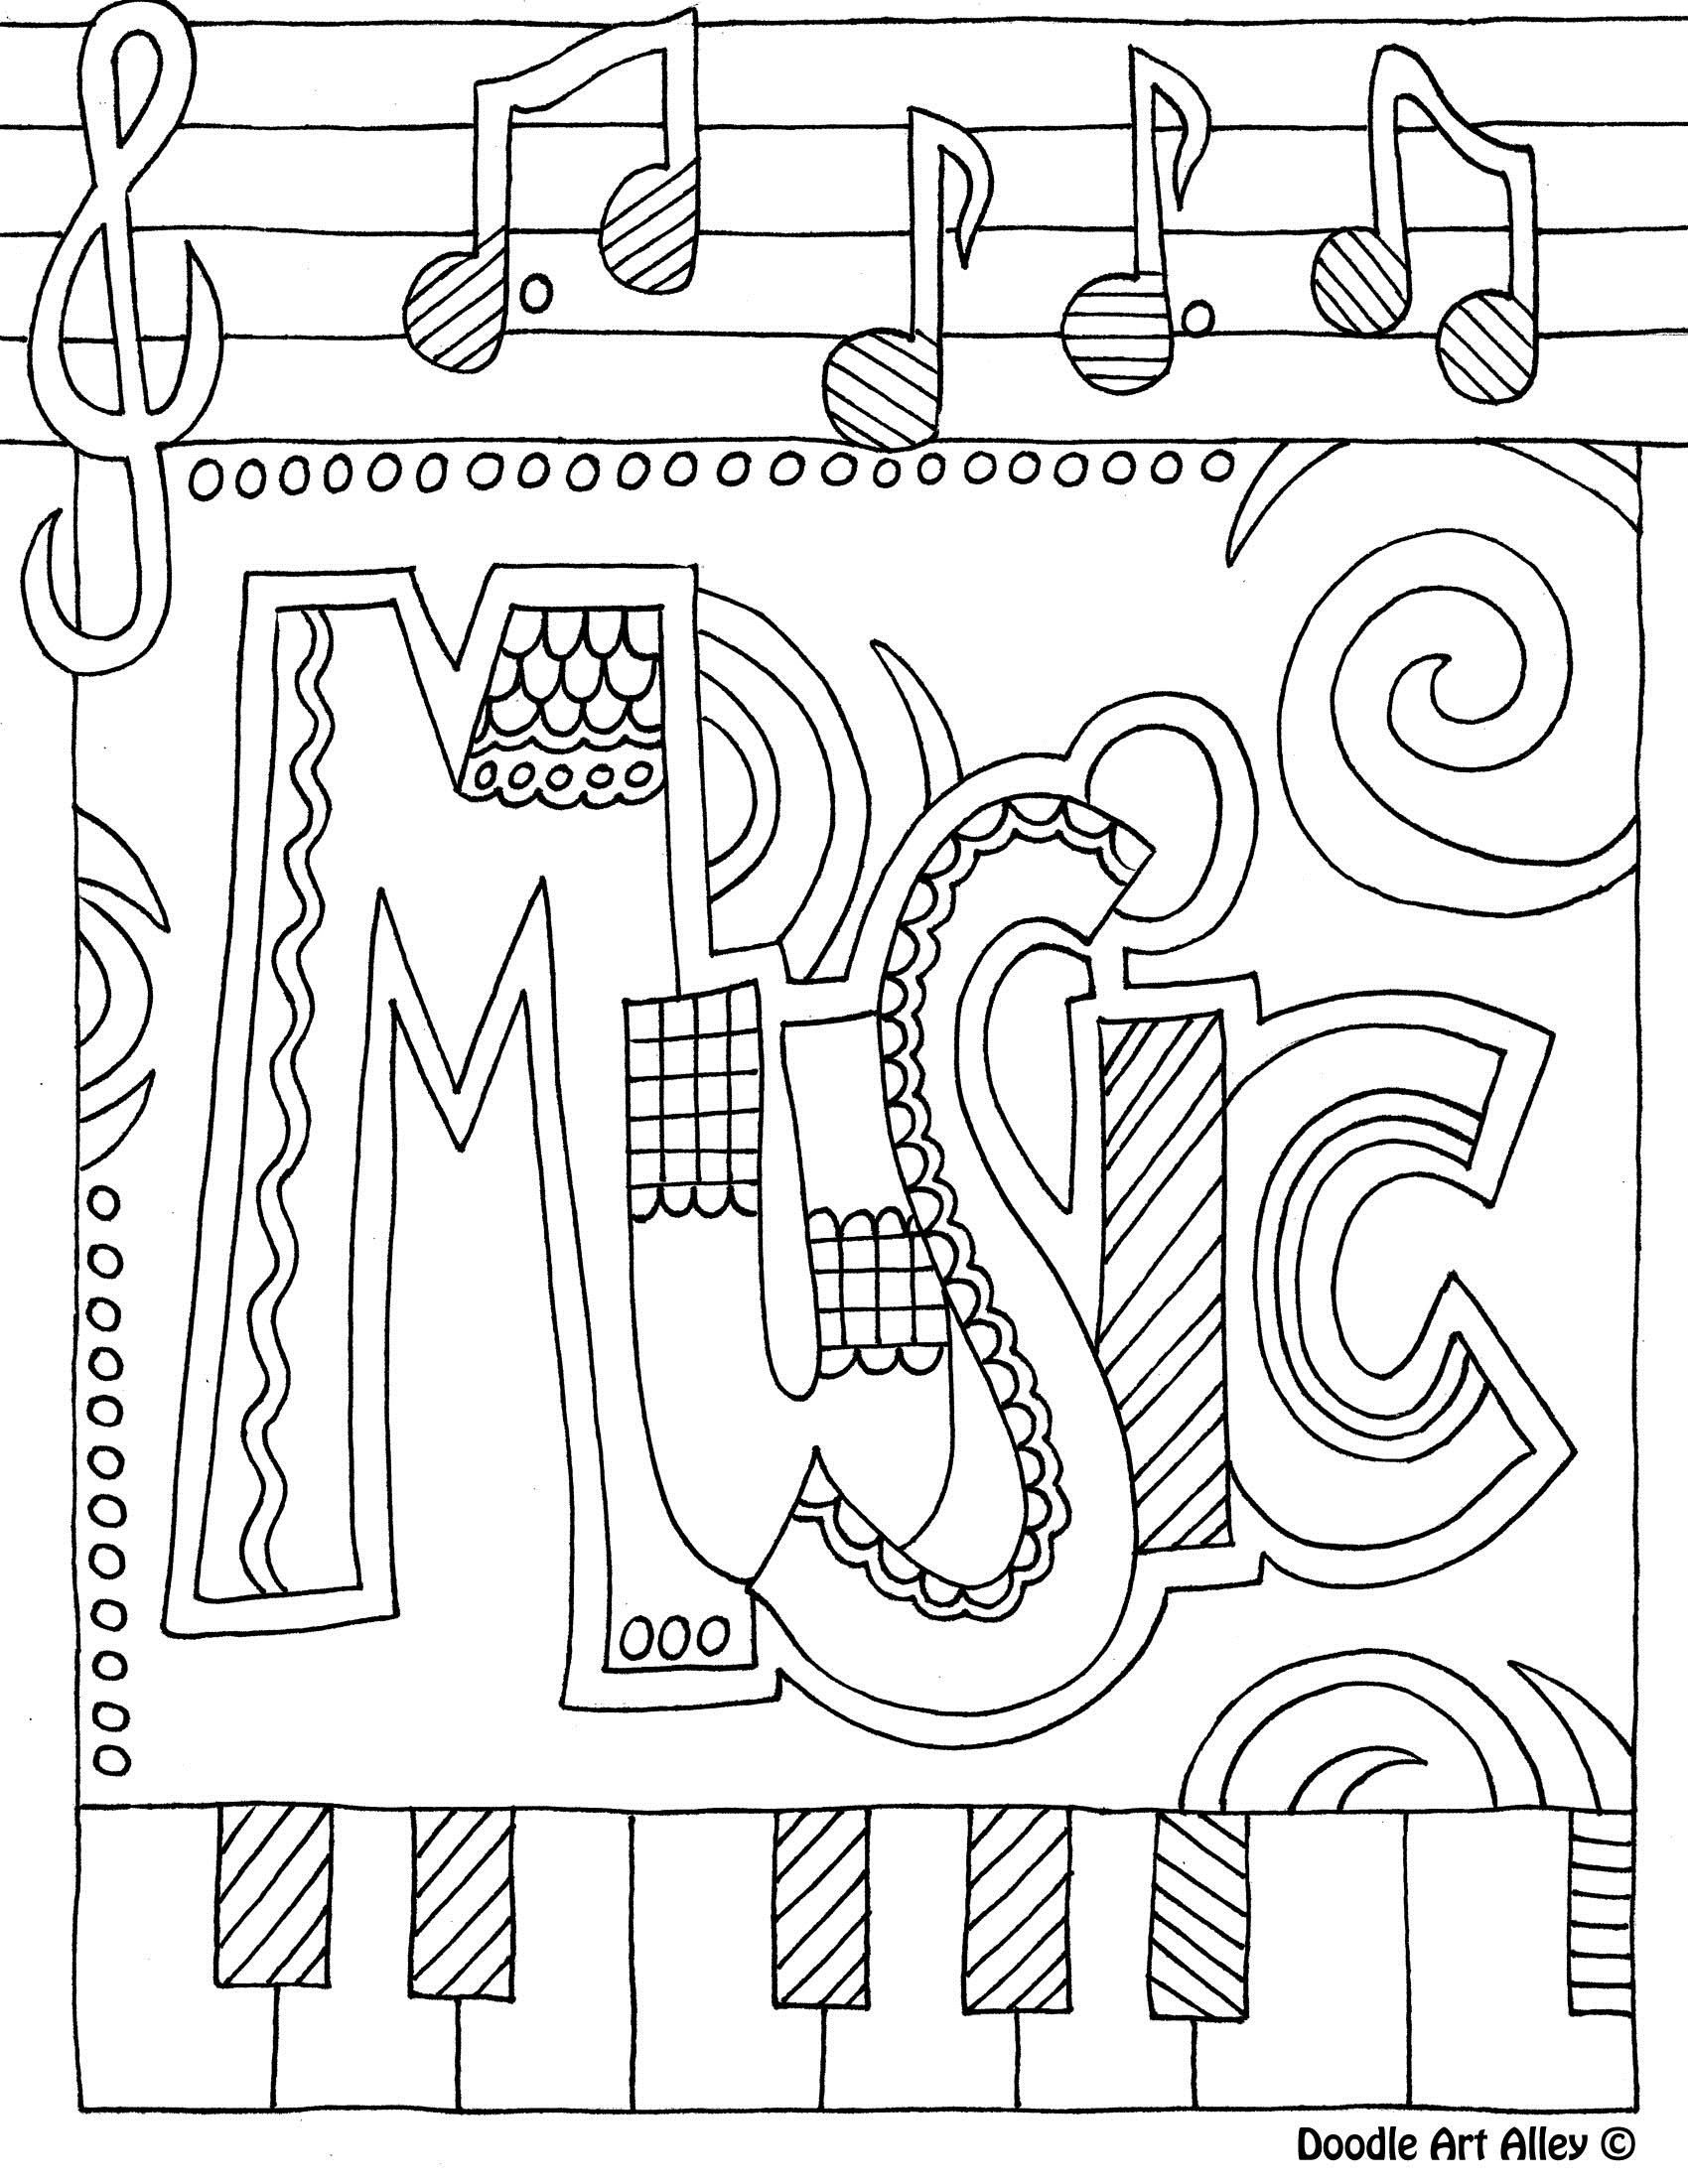 Garfield music coloring pages for kids to print free coloring pages - Acrobatics Coloring Page Coloring Pages For All Ages